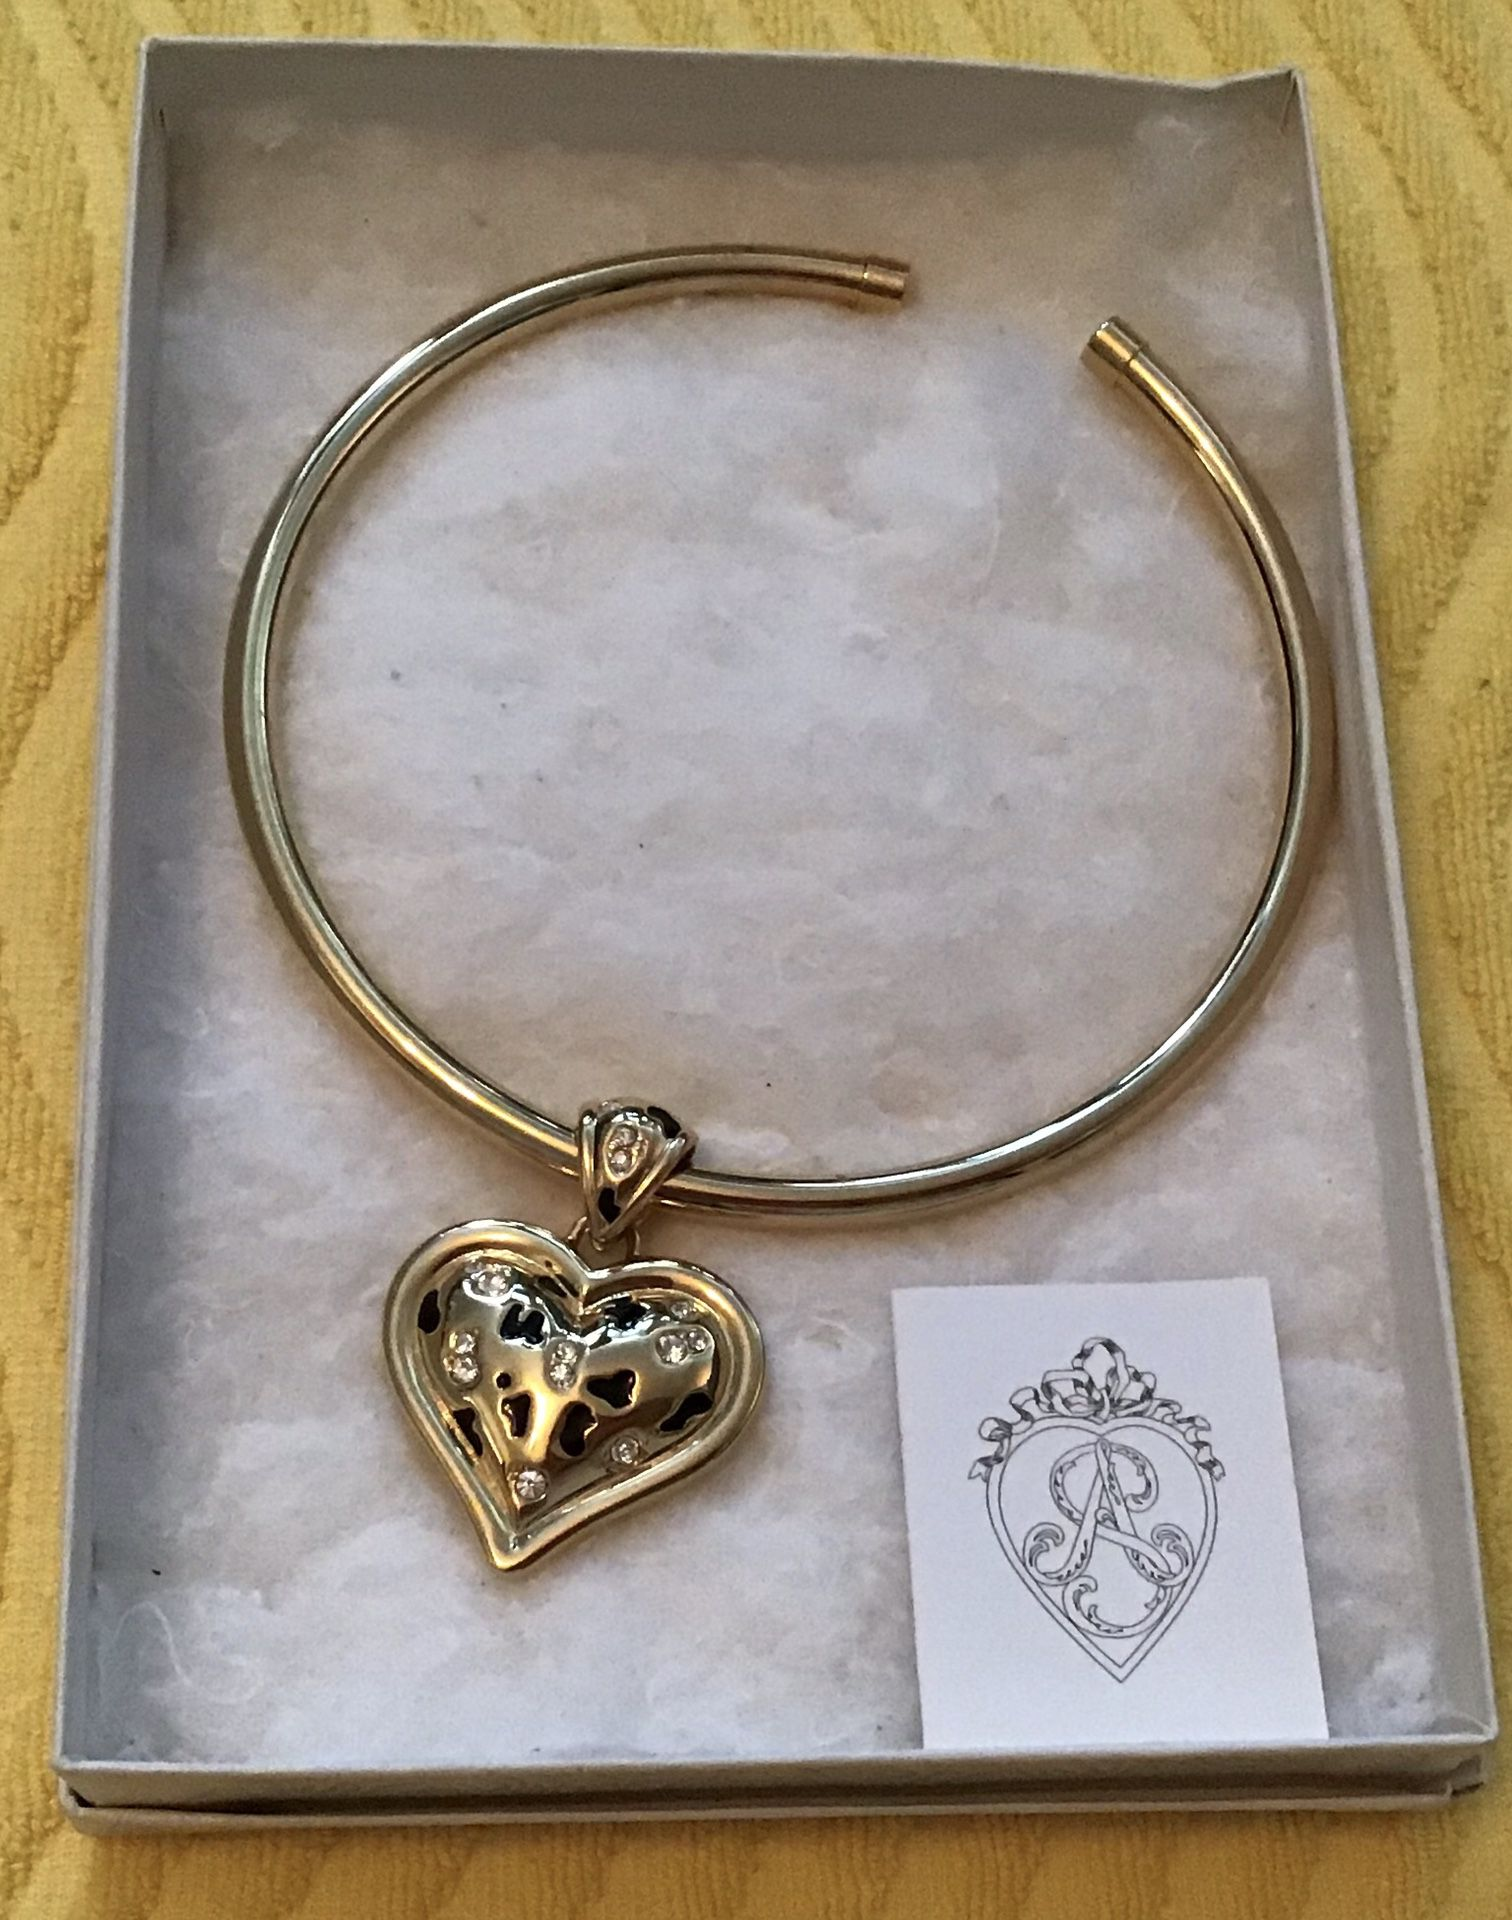 Gorgeous necklace. Double sided heart. This would make a lovely gift. Brand new. Never worn